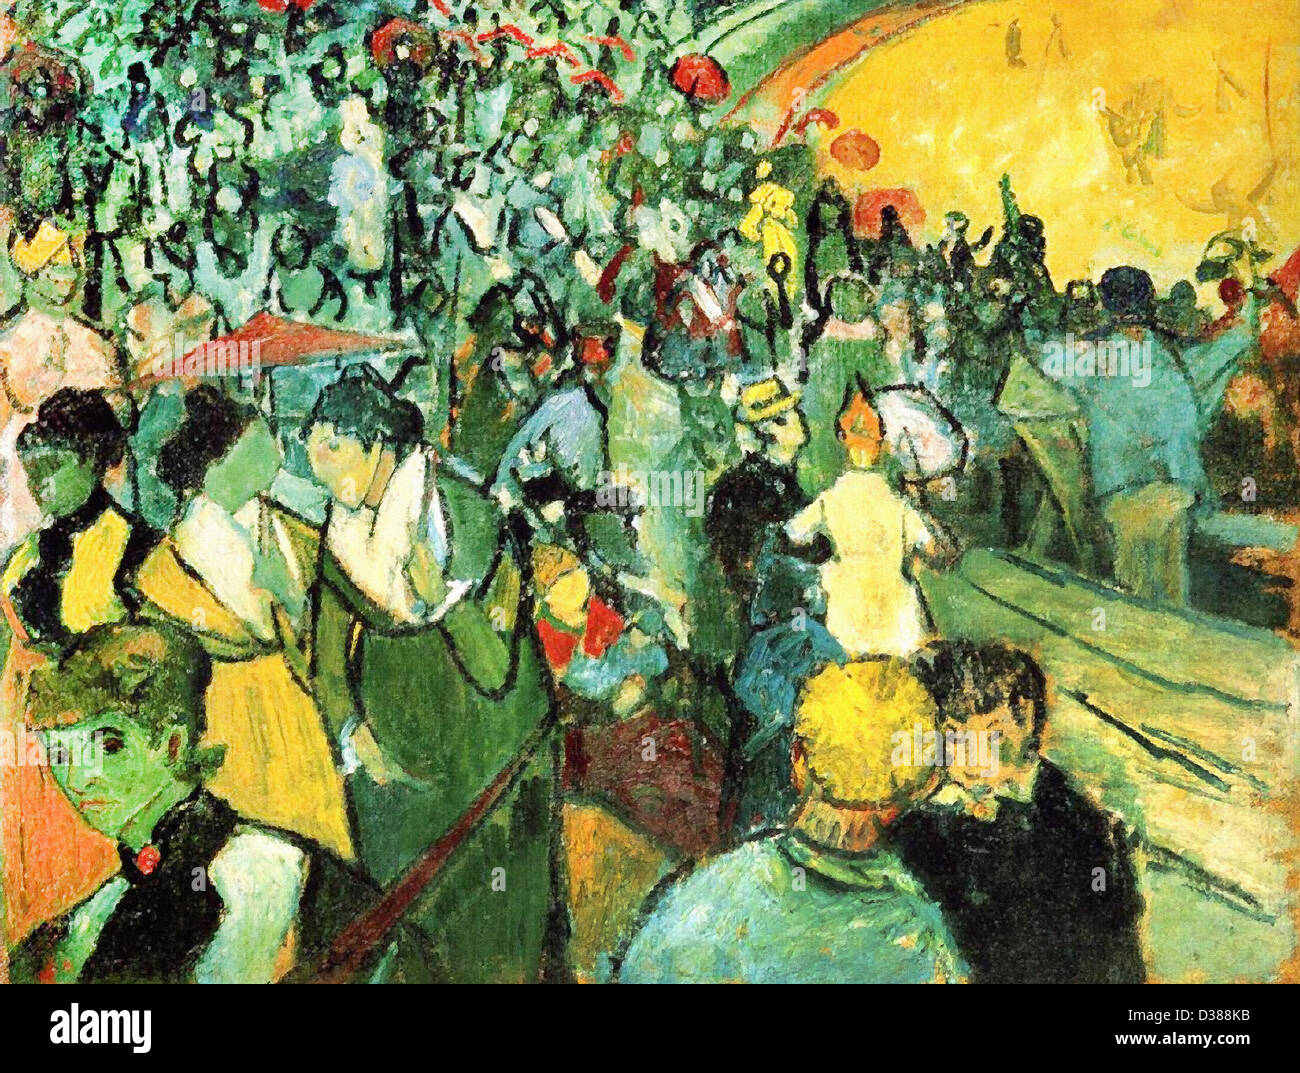 Vincent van Gogh, Spectators in the Arena at Arles. 1888. Cloisonnism. Oil on canvas. Hermitage, St. Petersburg, - Stock Image